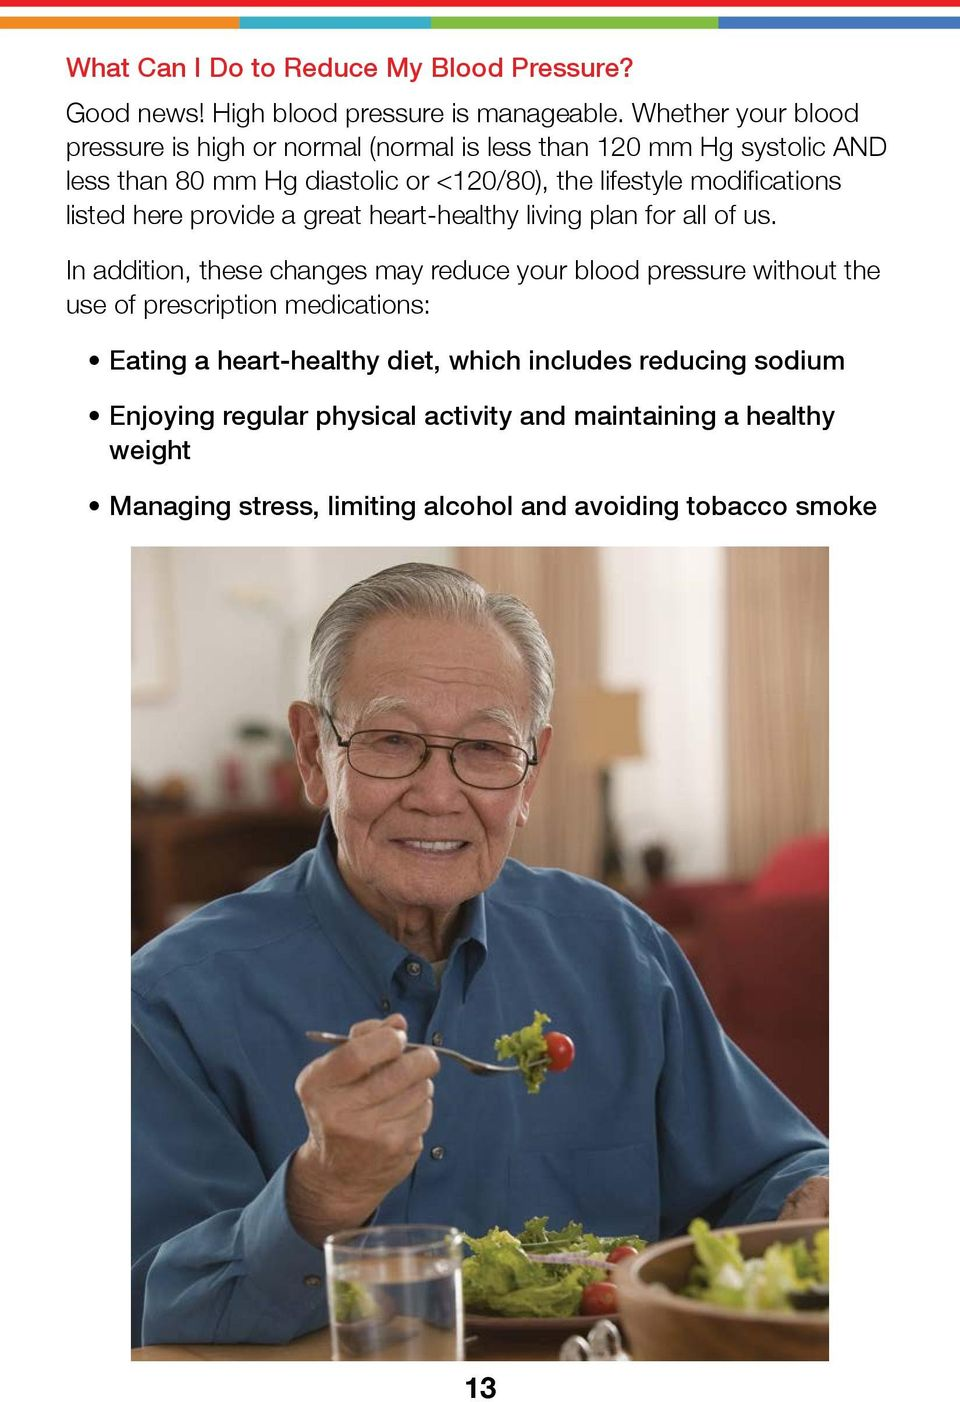 modifications listed here provide a great heart-healthy living plan for all of us.